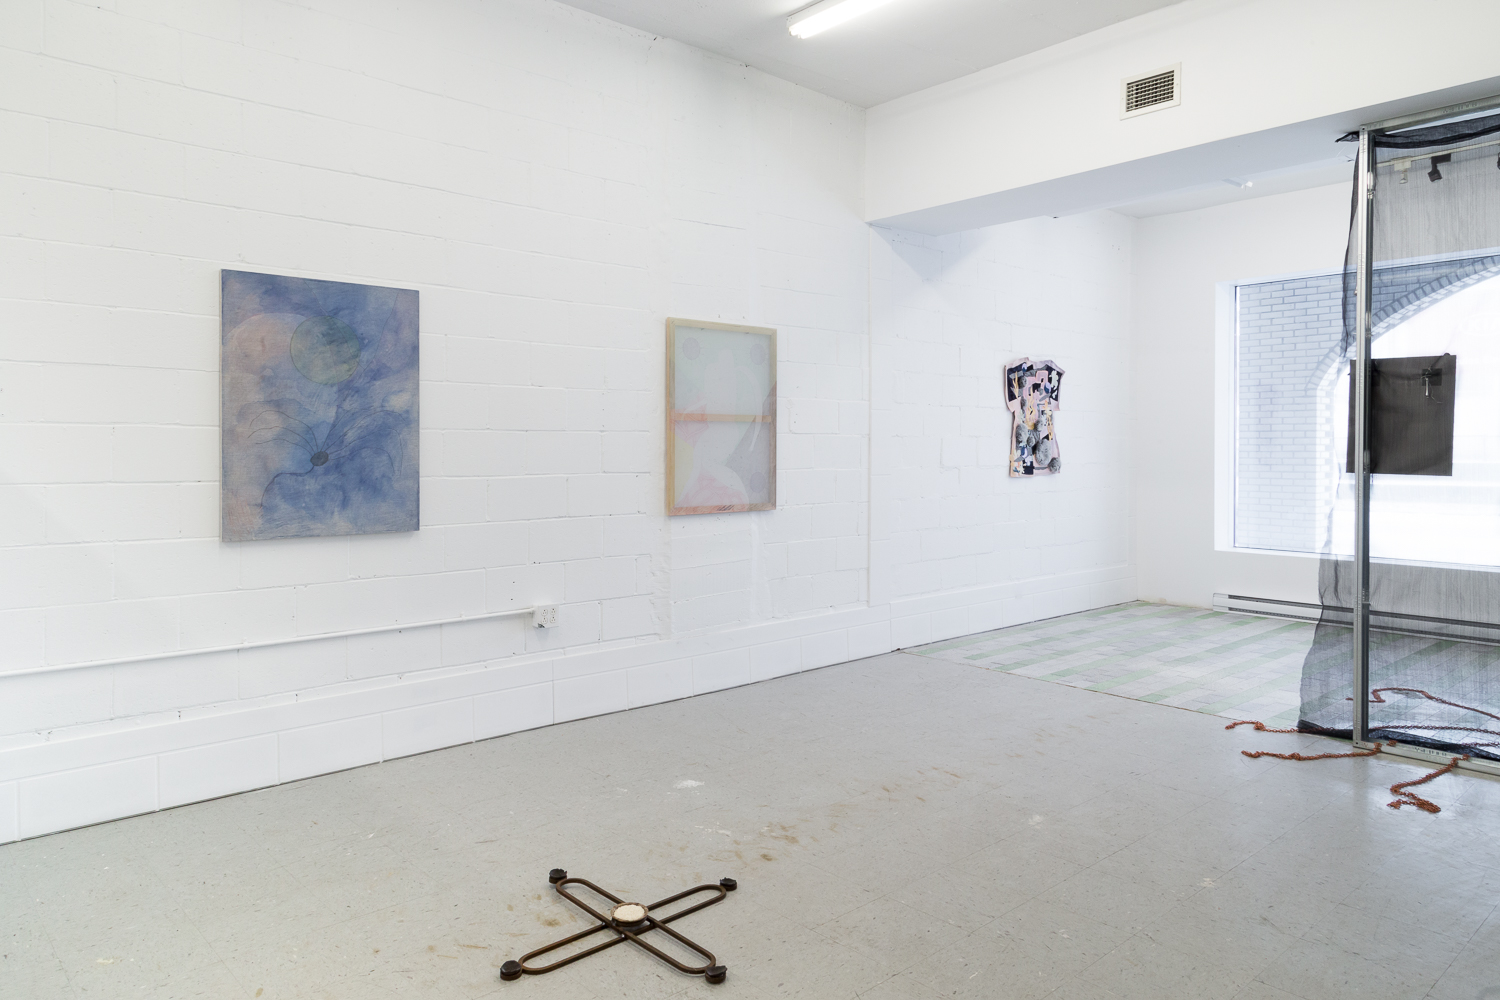 Installation View,  Four Pillars,  2018 © Sandra La Rochelle. Courtesy of L'INCONNUE. Left to right: Hanna Hur's  Fever  II, 2017; Maia Ruth Lee's  Mother's Knot,  2018; Hur's  Endless Spring vii,  2017; Zadie Xa's T he Rabbit, the Knife and the Year of the Pig,  2017, Hur's  Mother ii,  2017. Laurie Kang's  In Form and Ruin,  2017.